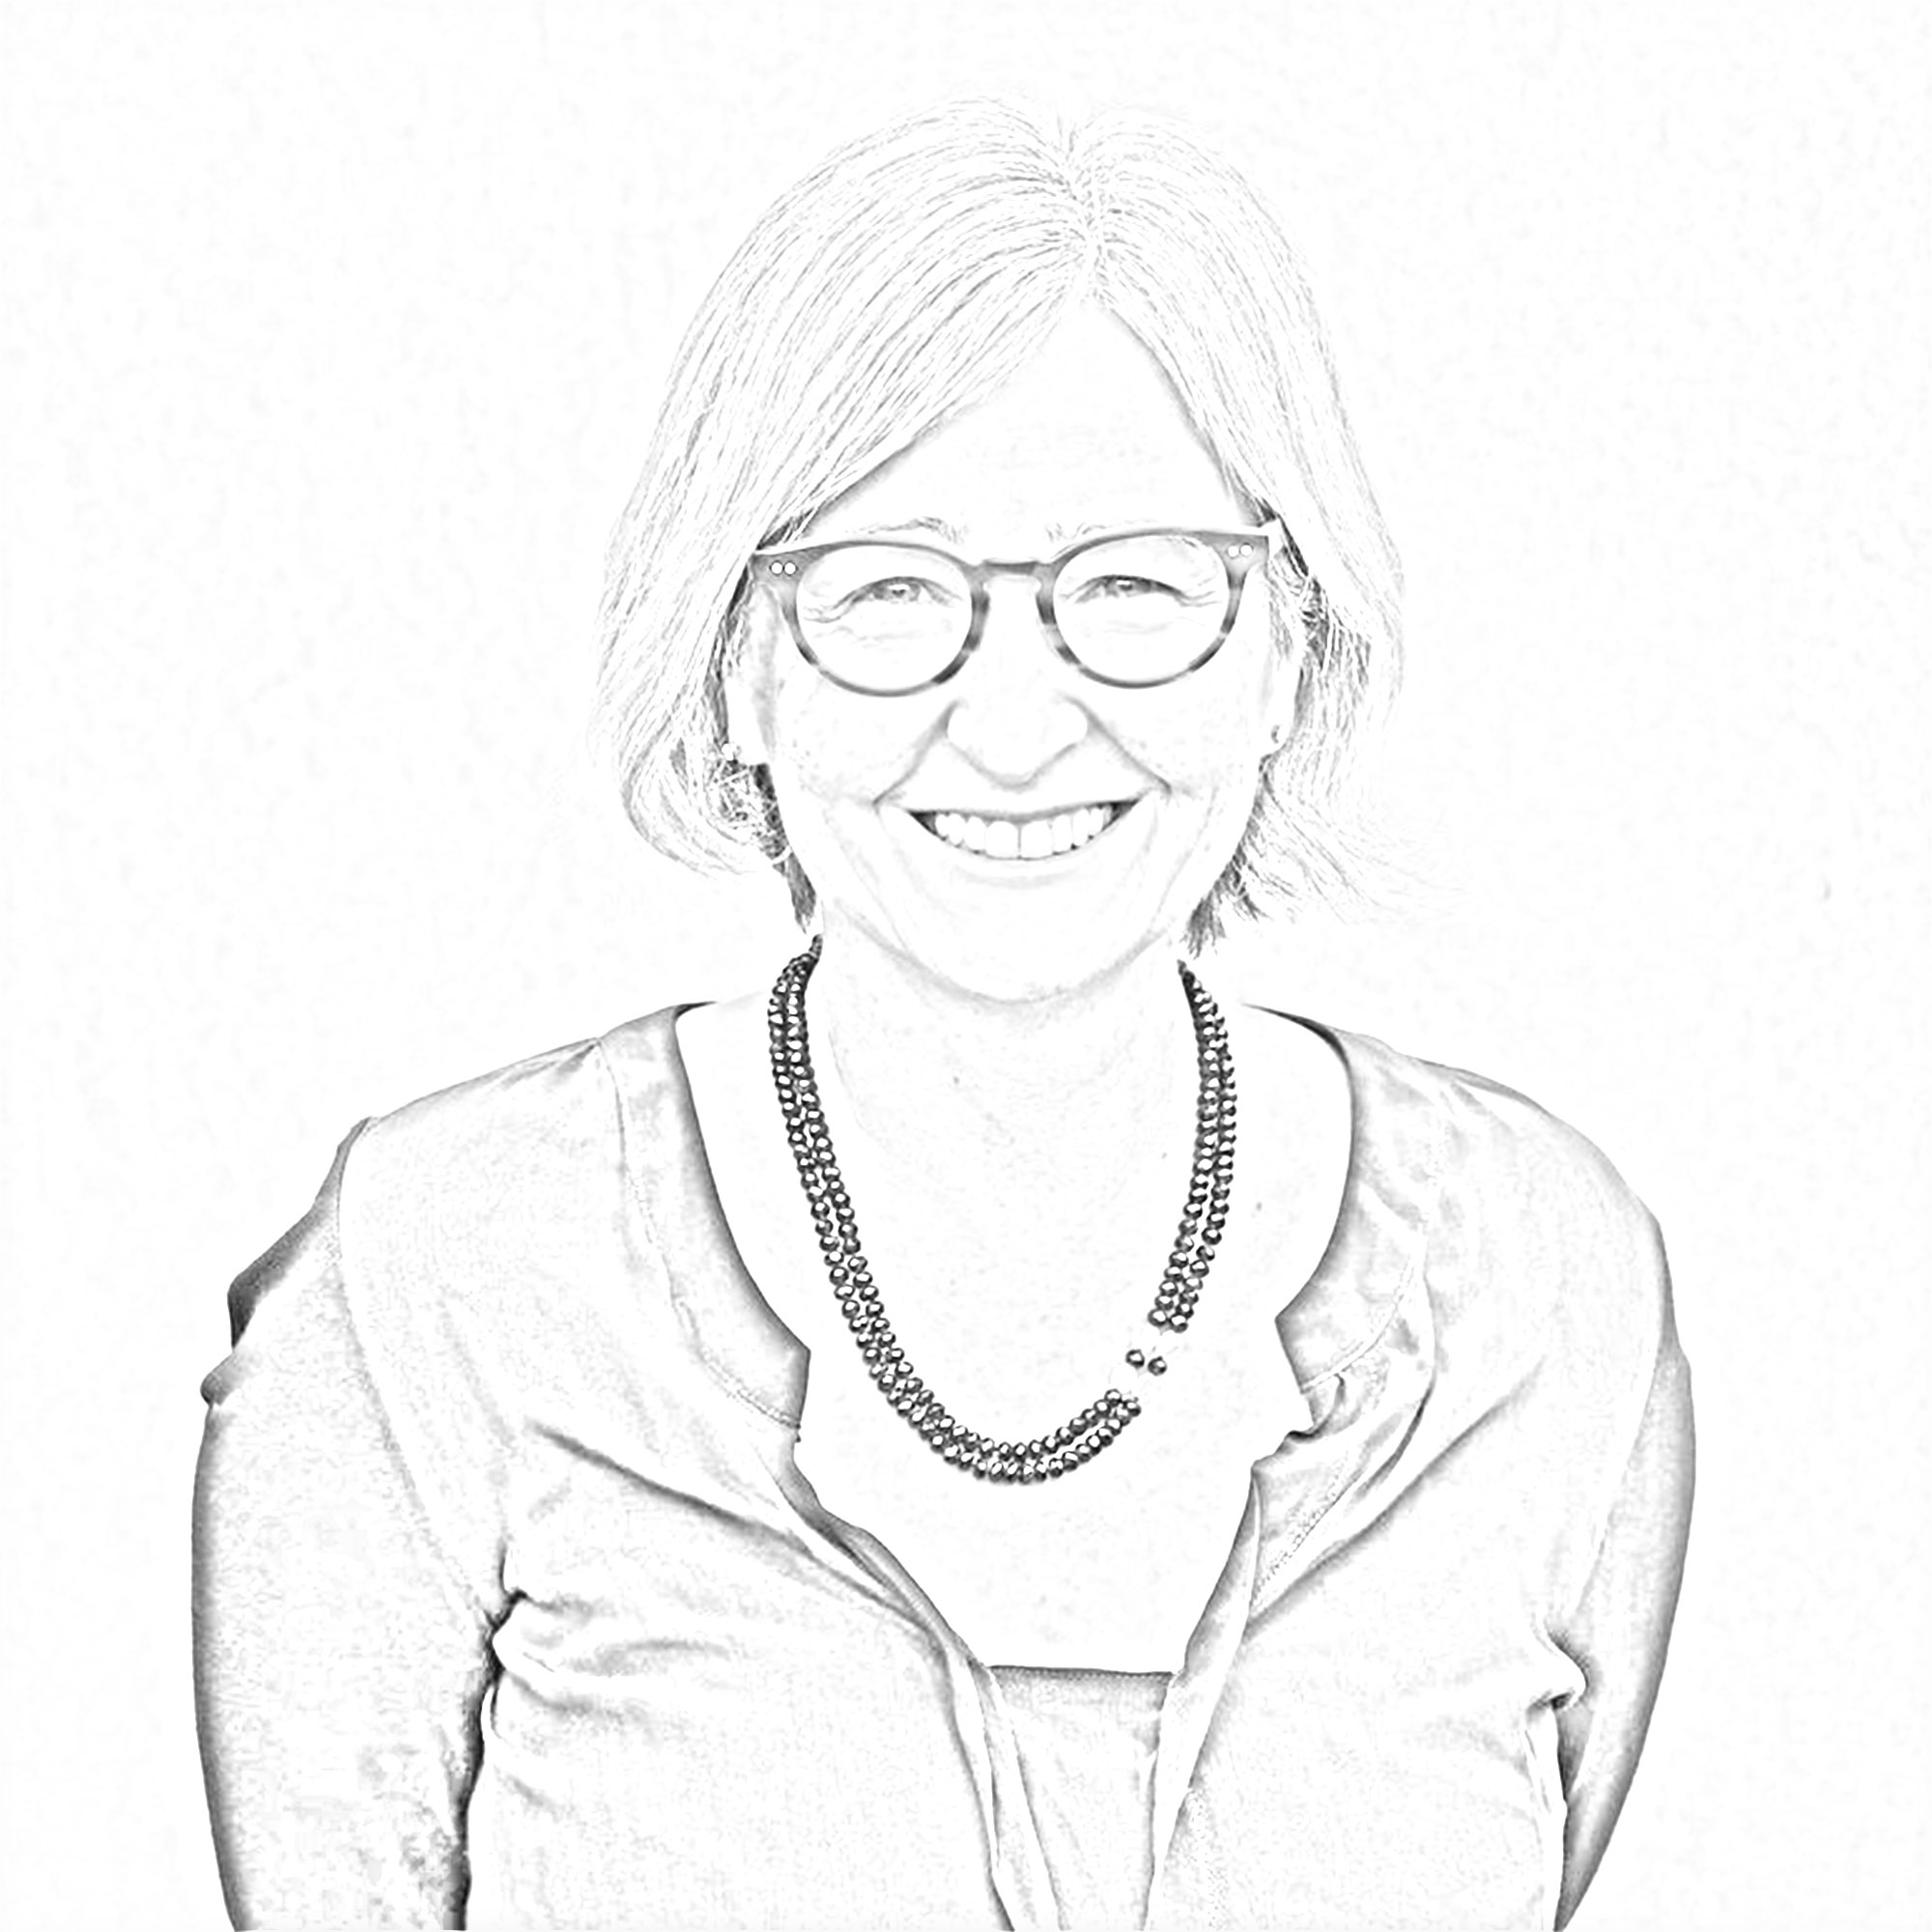 GABRIELLE TOURELLEPartner, People & Culture - STRATEGIC PROBLEM SOLVERGabrielle is a creative blend of PR and HR. She has run PR agencies and managed countless campaigns for multinational clients. Gabrielle is a compassionate and strategic creative thinker, with a wise and pragmatic bent to solve modern workplace issues. Her blend of communications and people skills give her a strong perspective from which to solve the industry's challenge of attracting and developing great people. She is passionate about driving a healthy culture in which people can thrive and find connection to their work and the people they work with.Read More